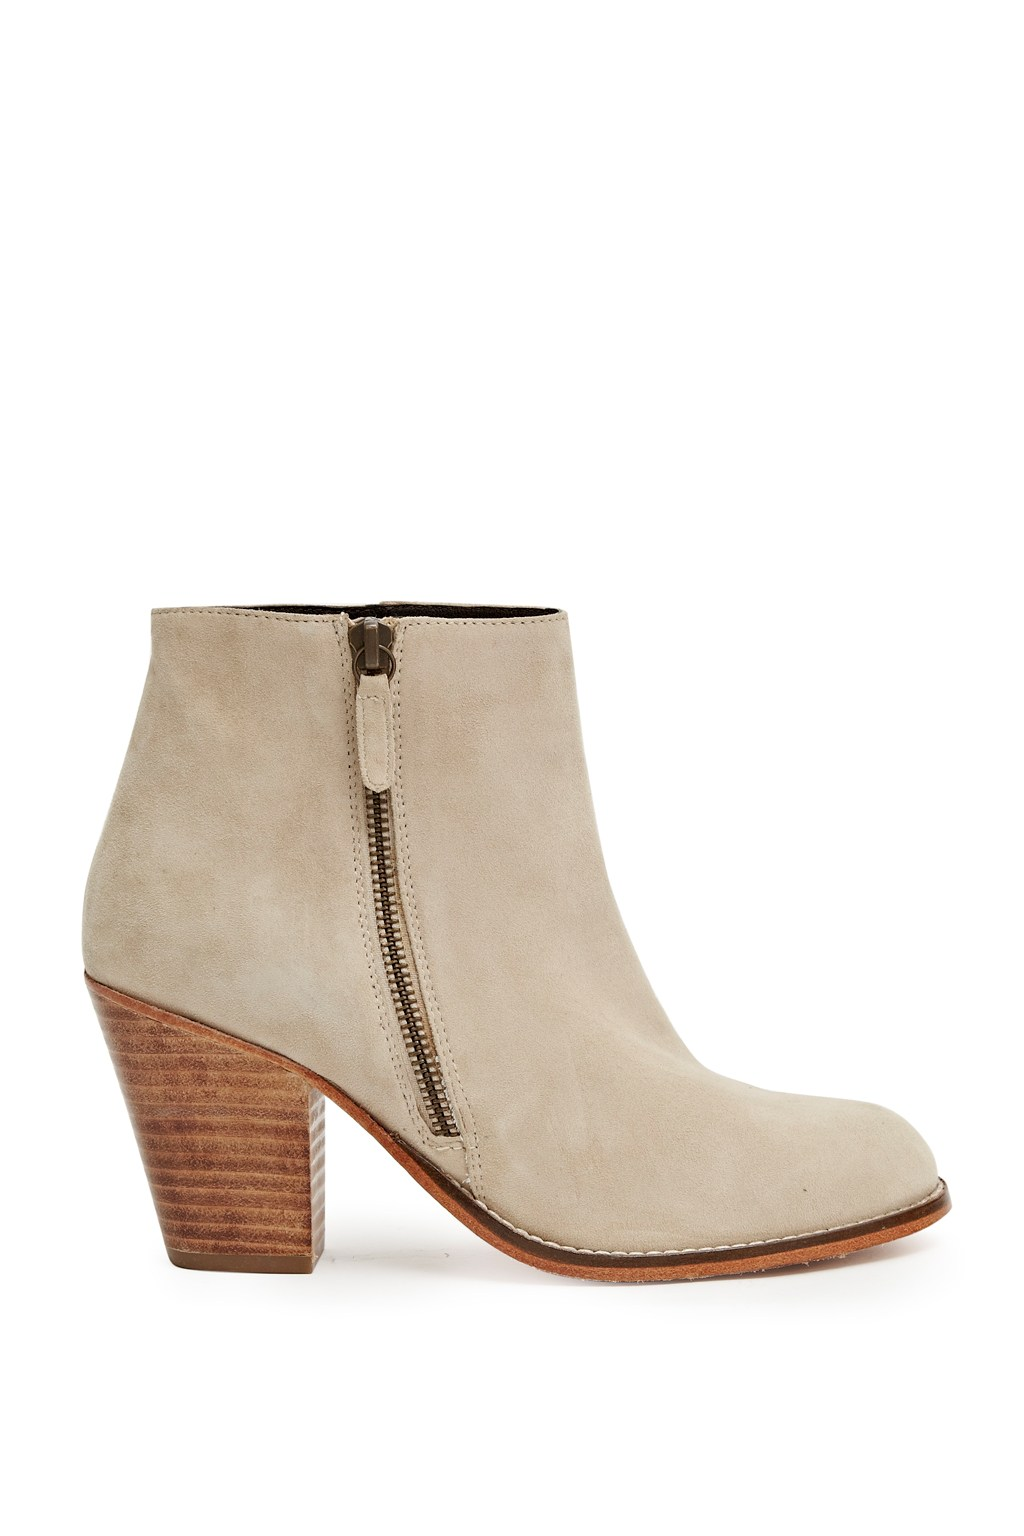 woodstock suede ankle boot archive great plains. Black Bedroom Furniture Sets. Home Design Ideas